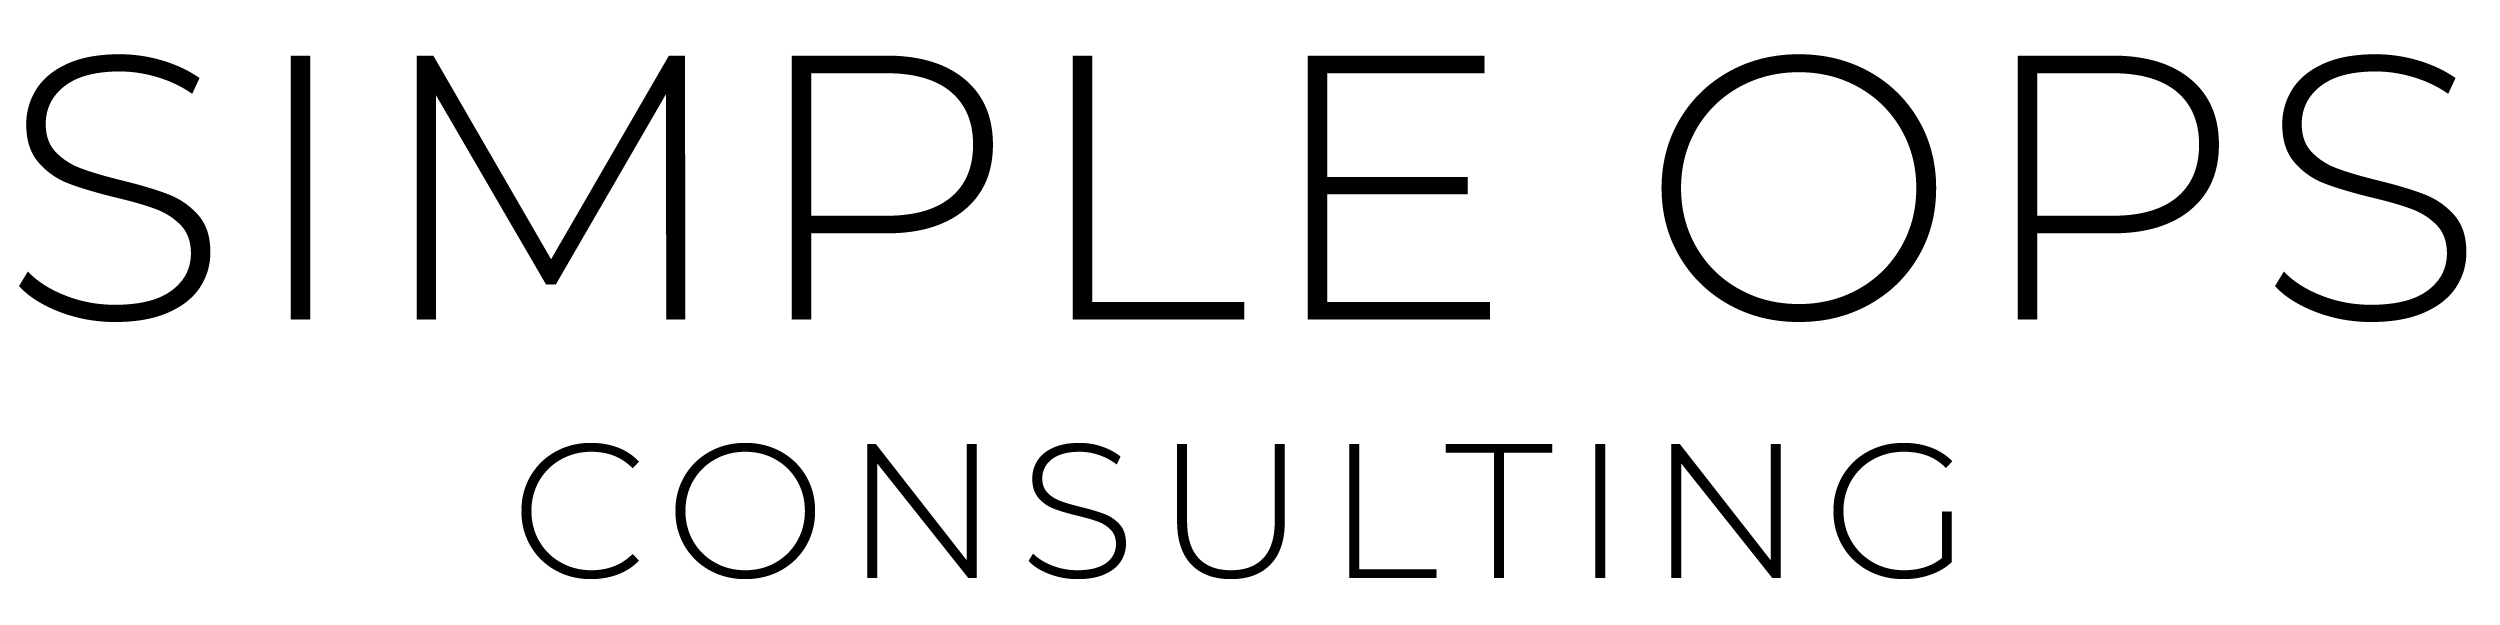 Simple-Ops-Consulting_LOGO.png